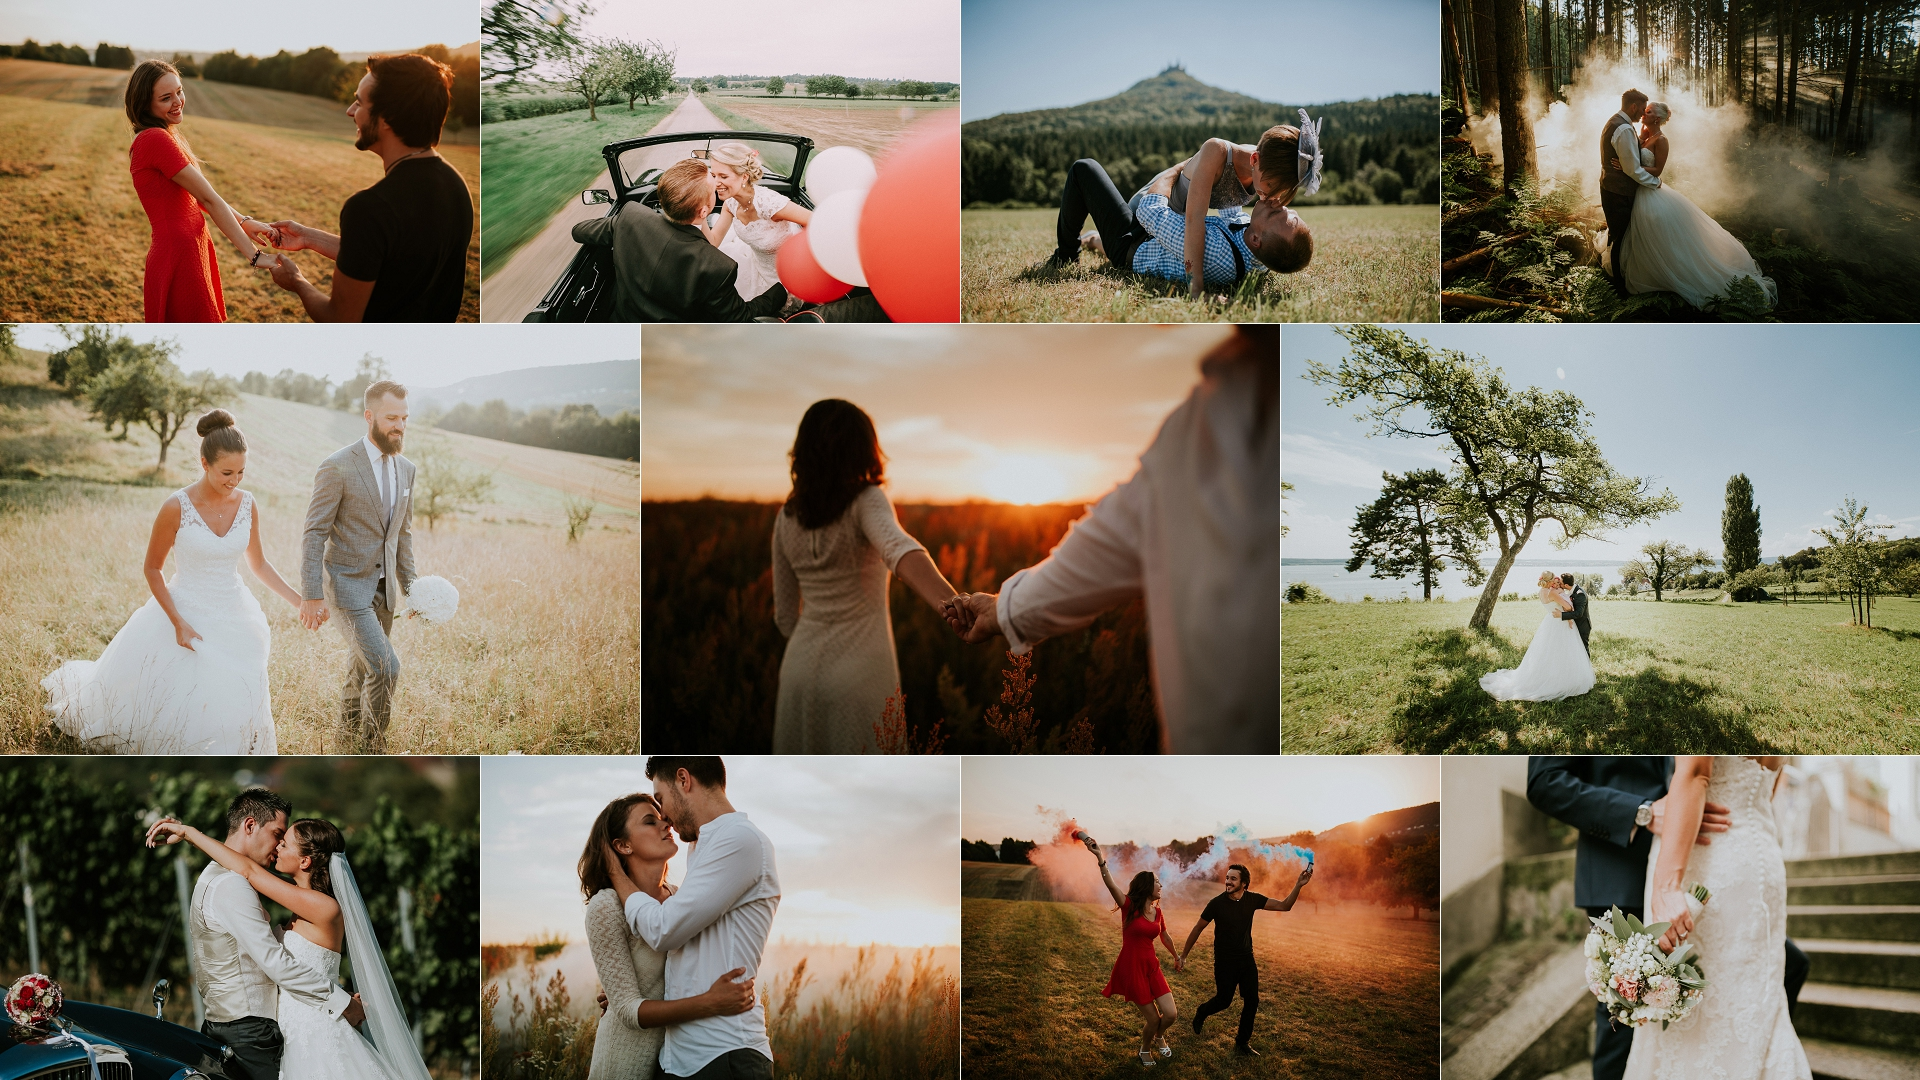 Wedding photographer Stuttgart - True Love Photography